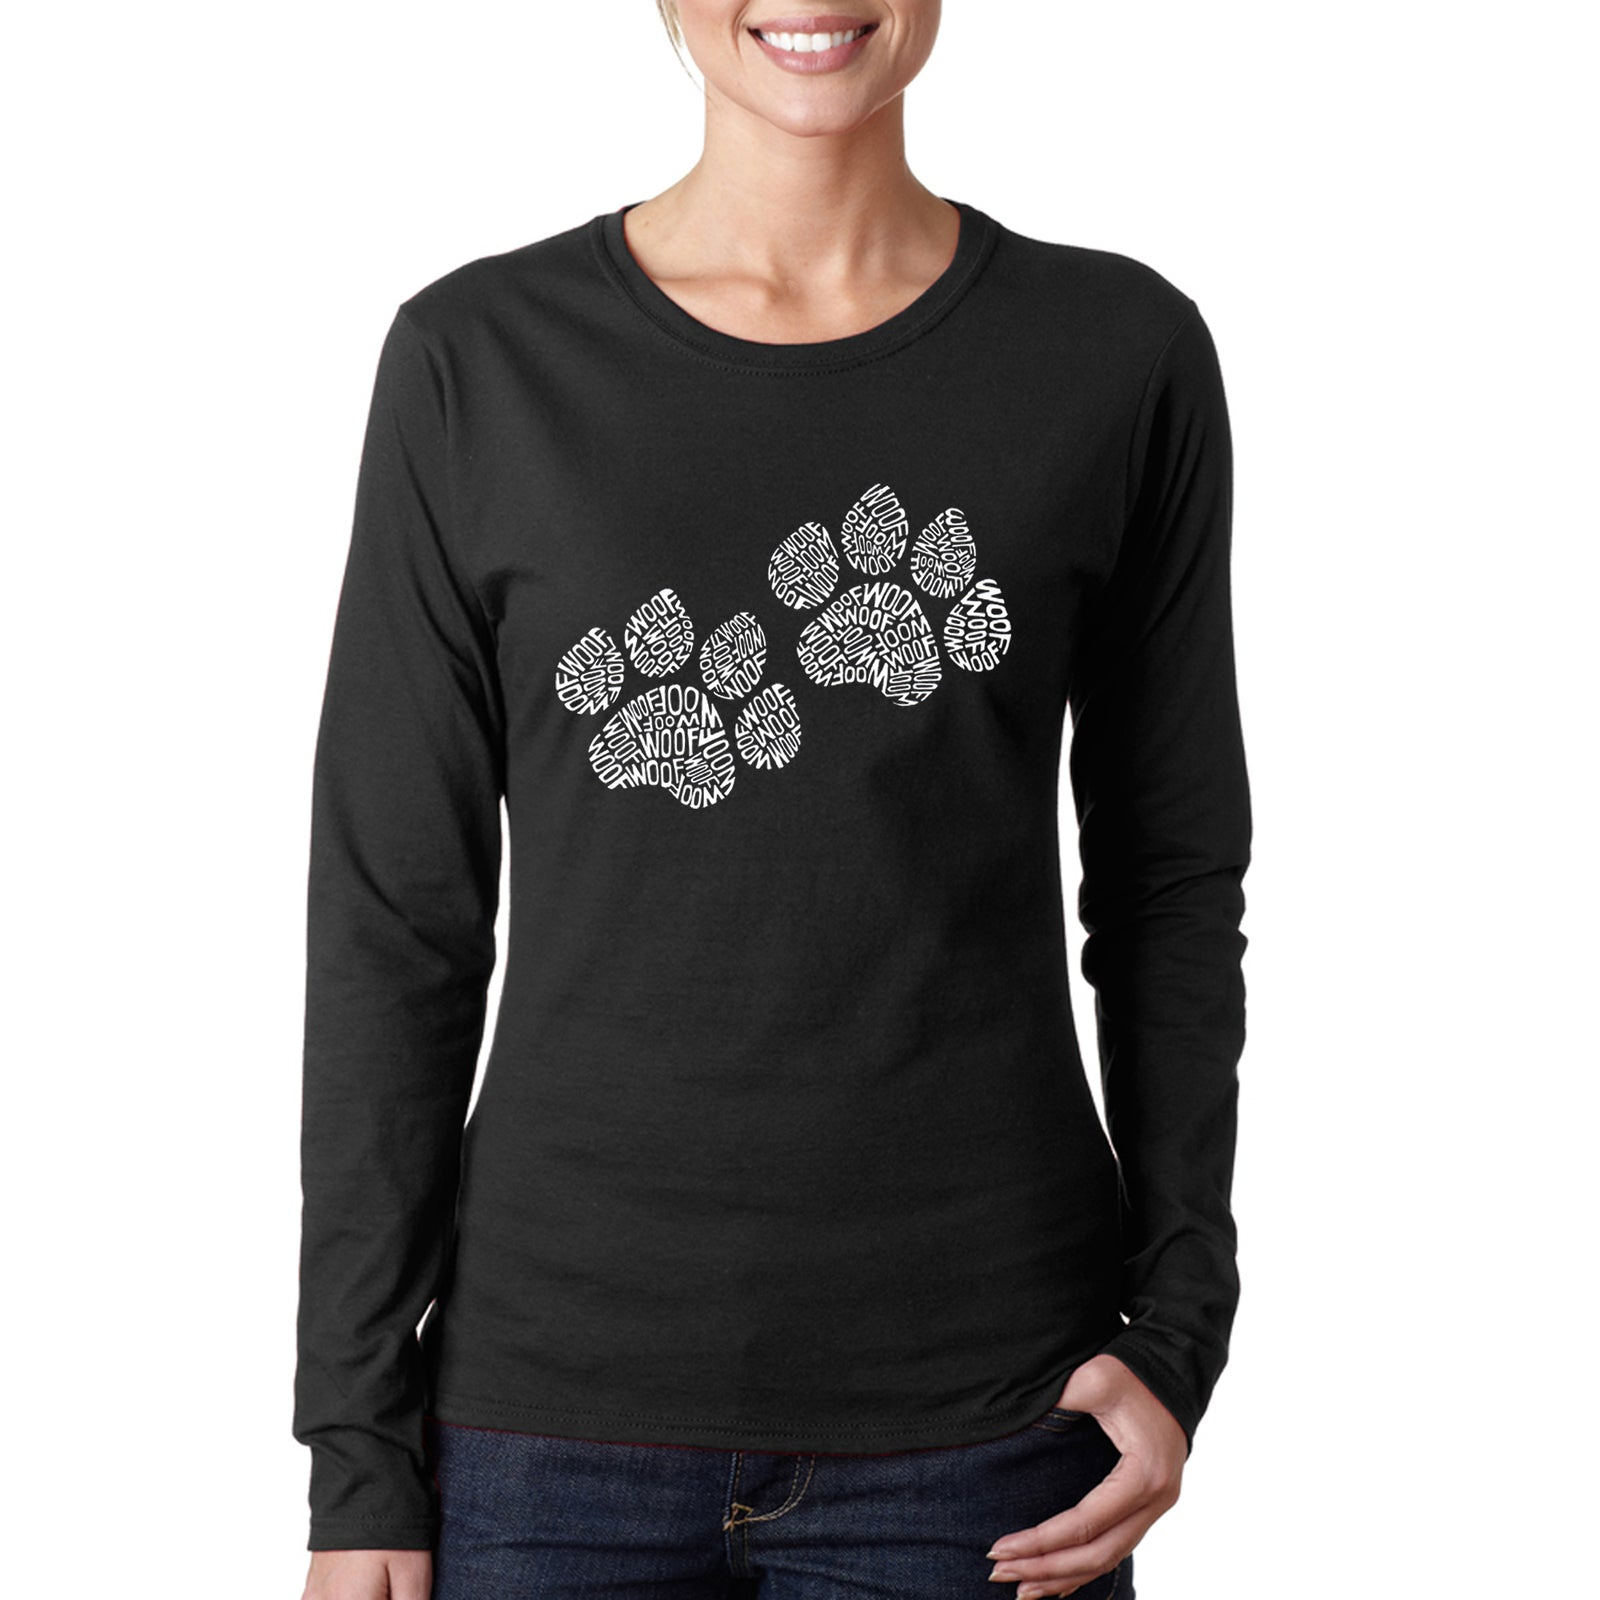 Women's Long Sleeve T-Shirt - Woof Paw Prints